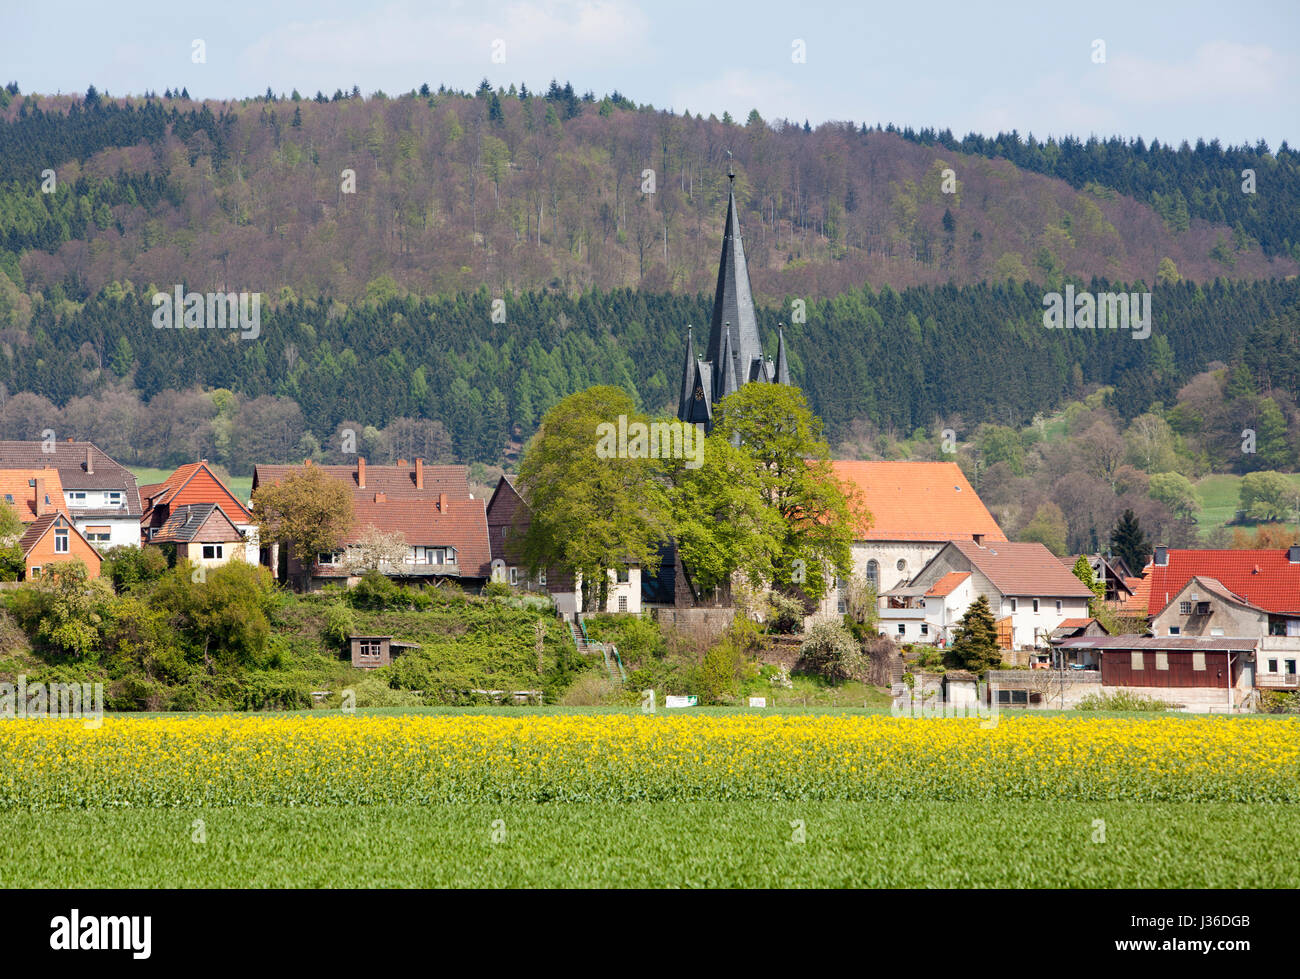 Curch and village of Bodenfelde, district of Northeim, Lower Saxony, Germany - Stock Image